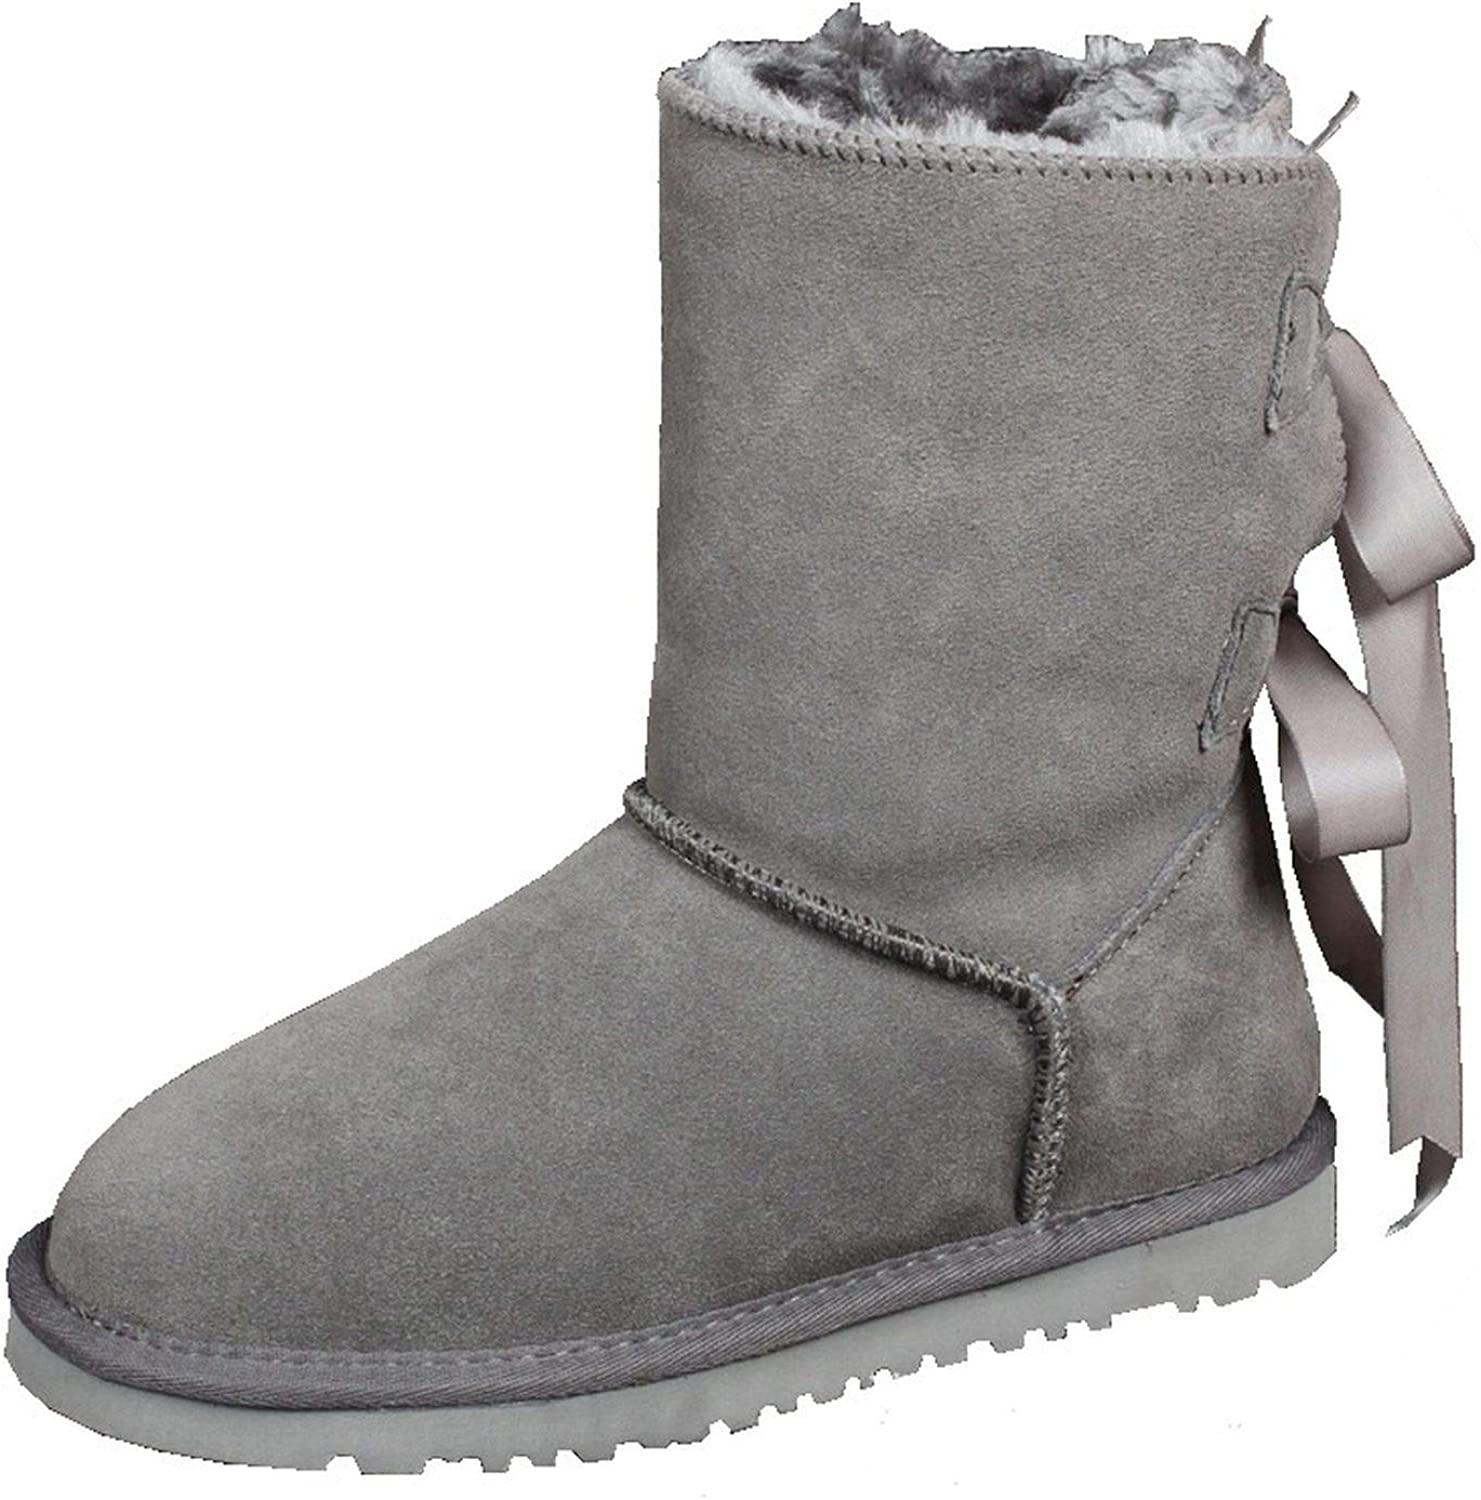 Women's 2018 Winter Leather Boots Women's shoes Snowballs and Hair